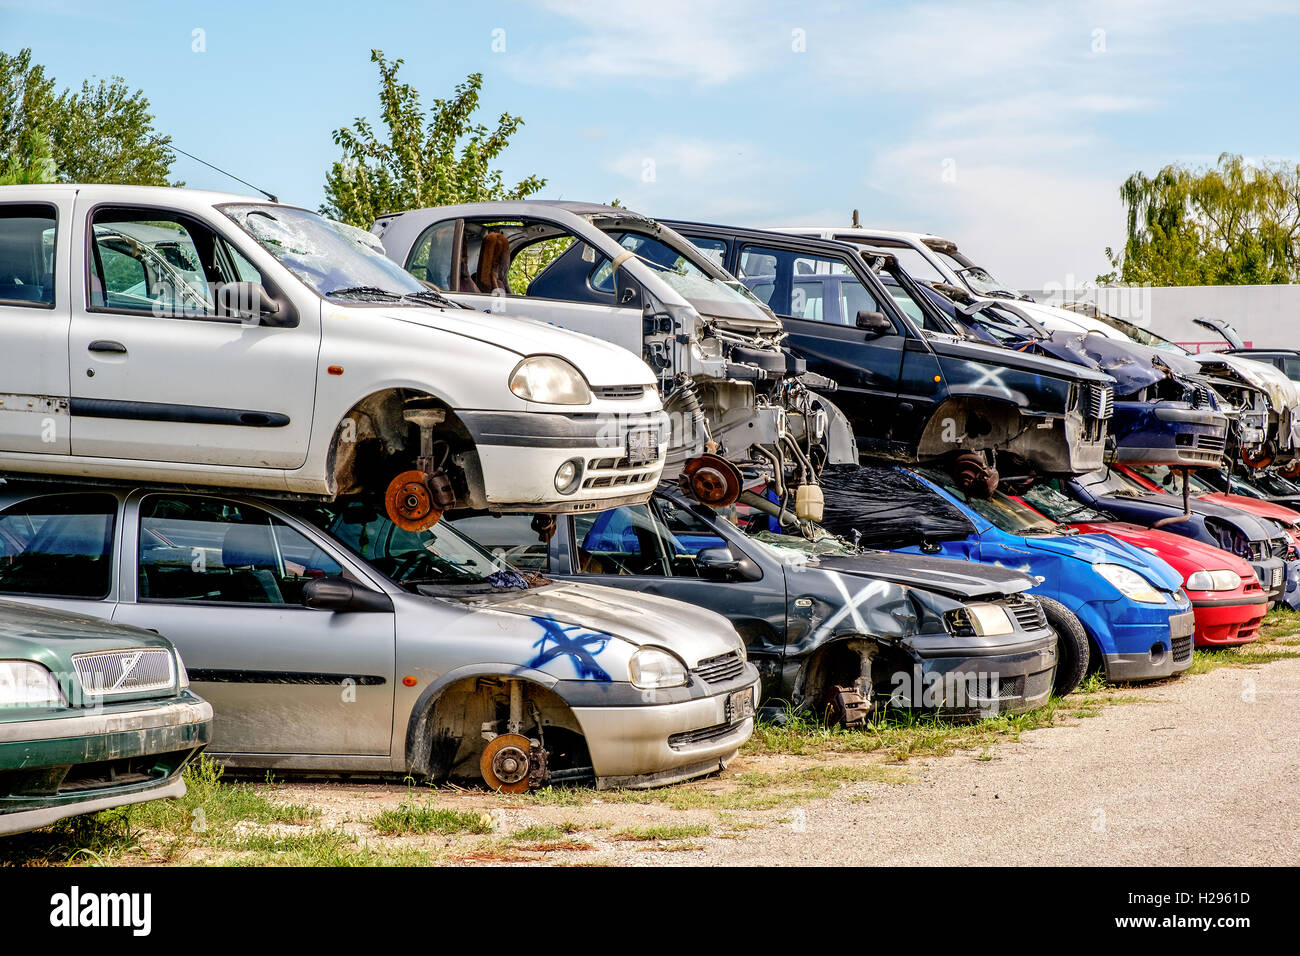 crashed cars junkyard - Stock Image